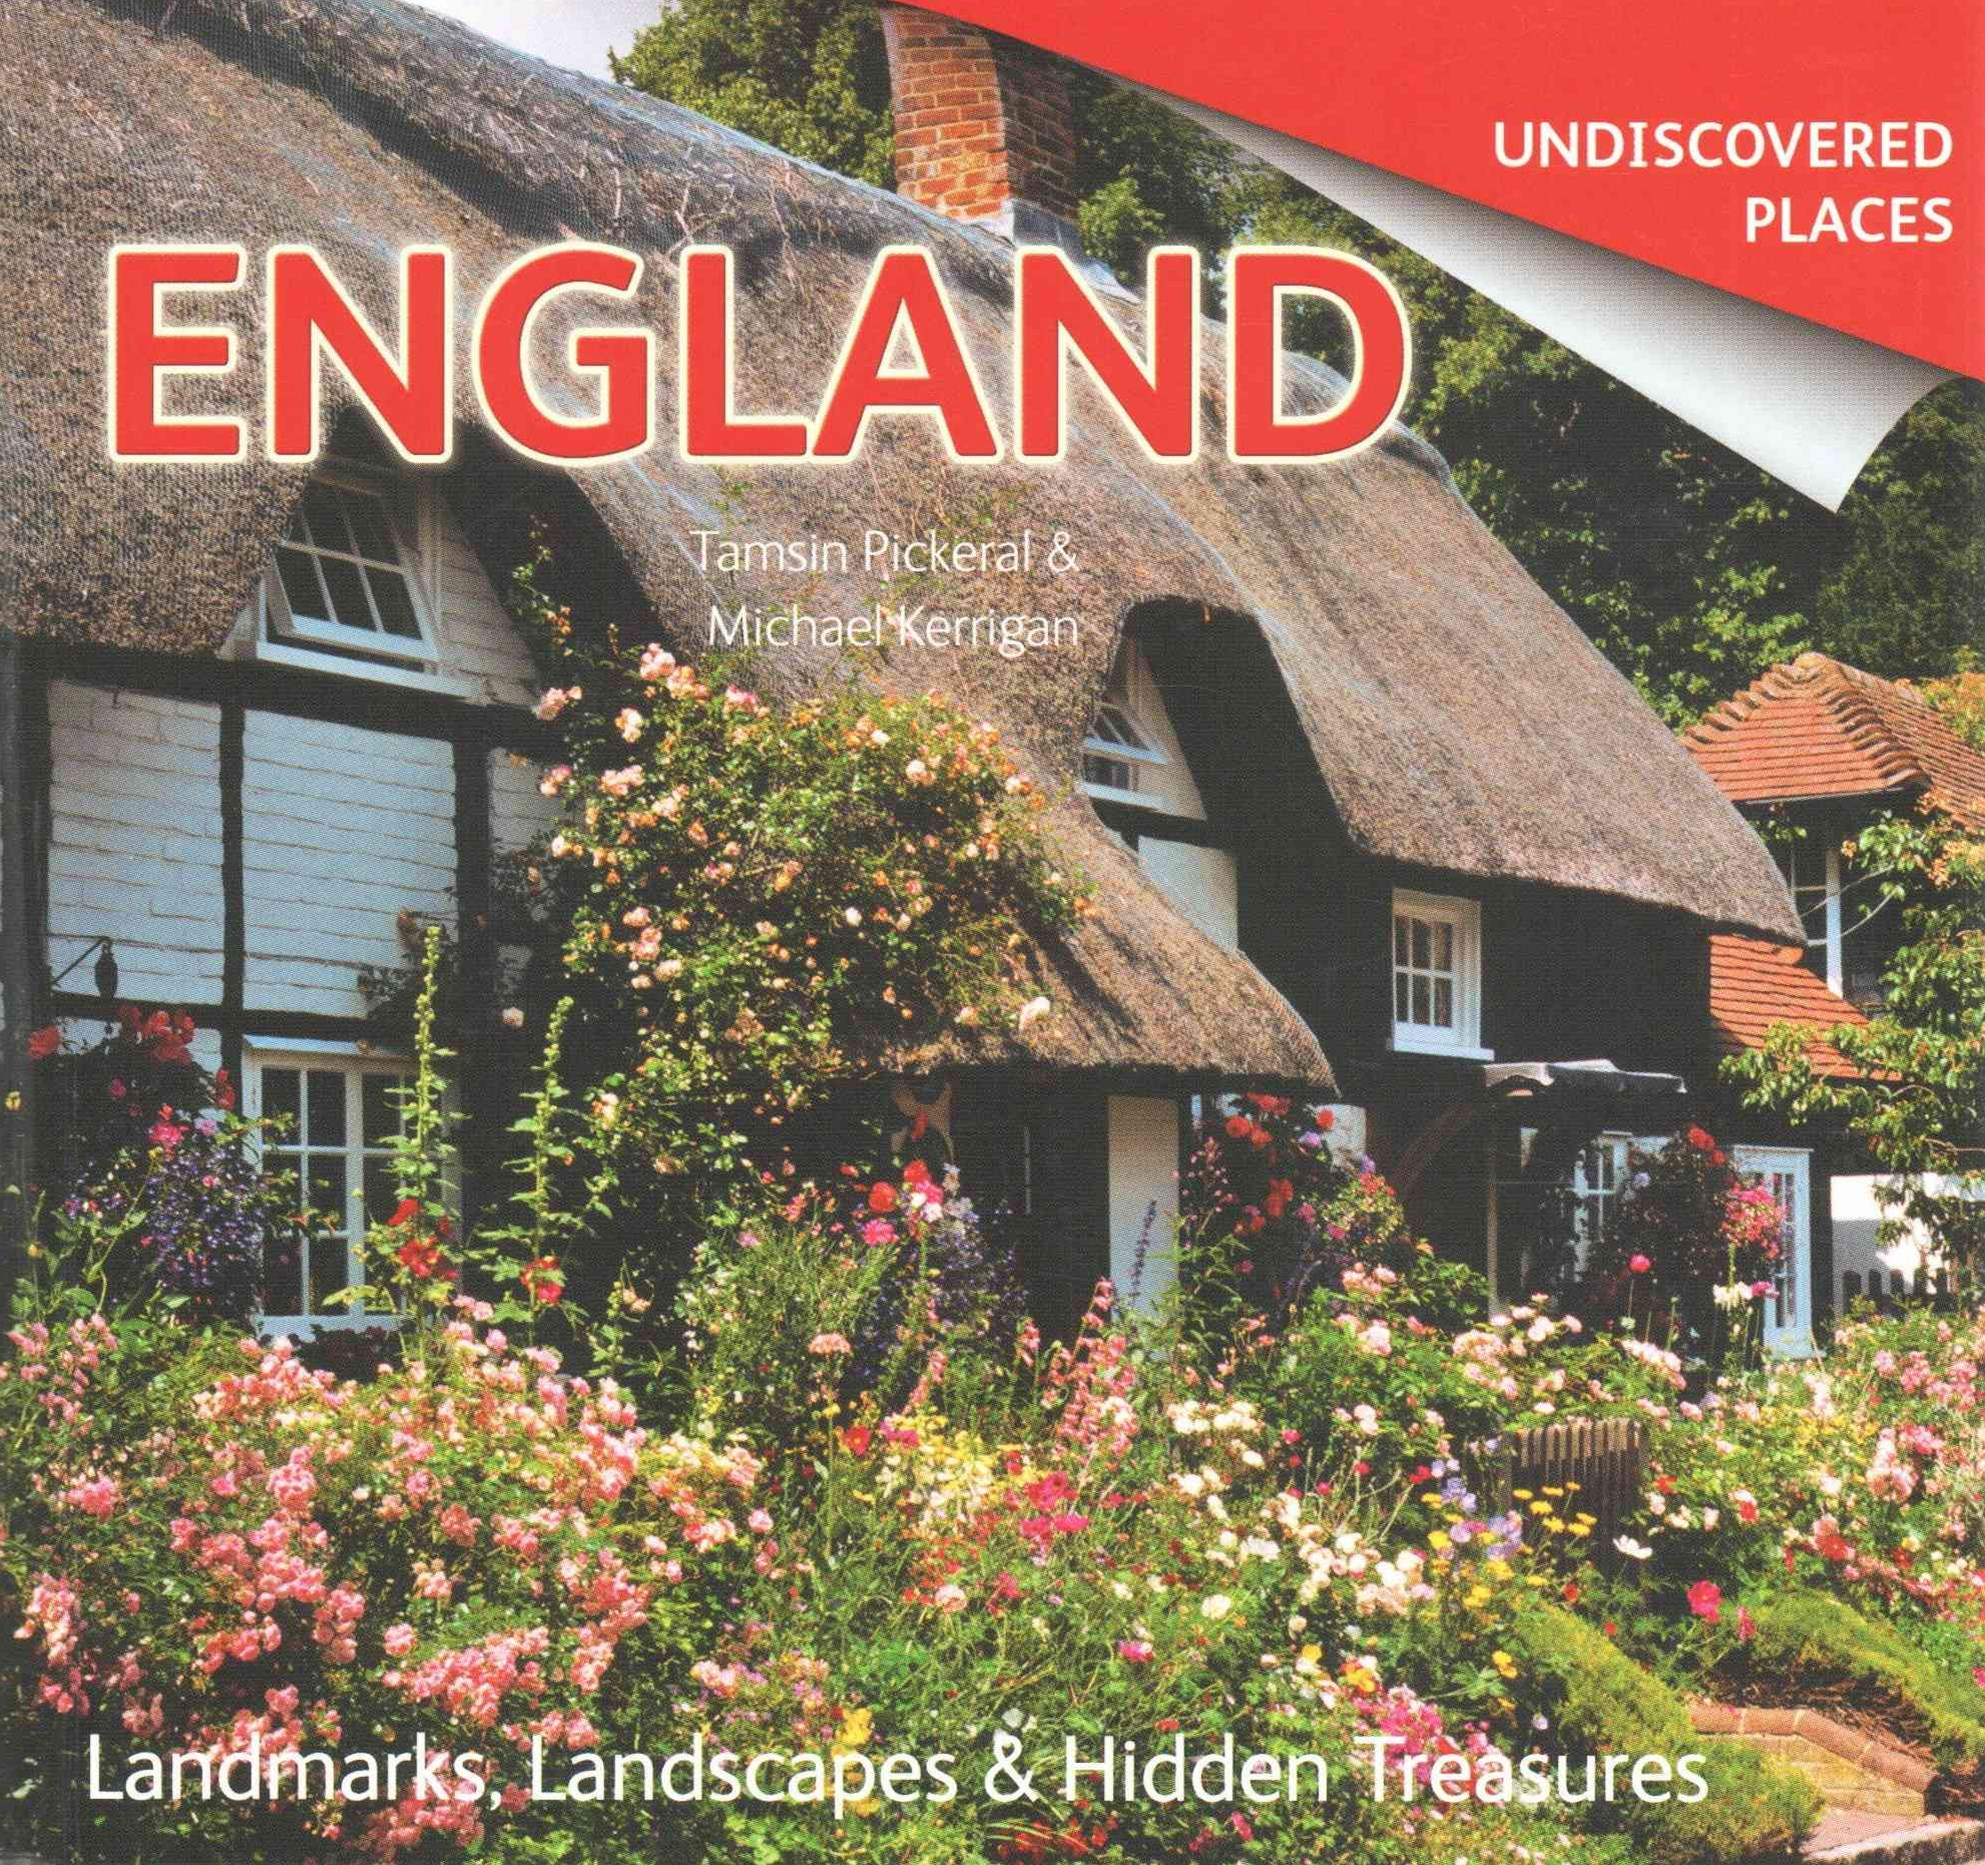 Undiscovered Places: England